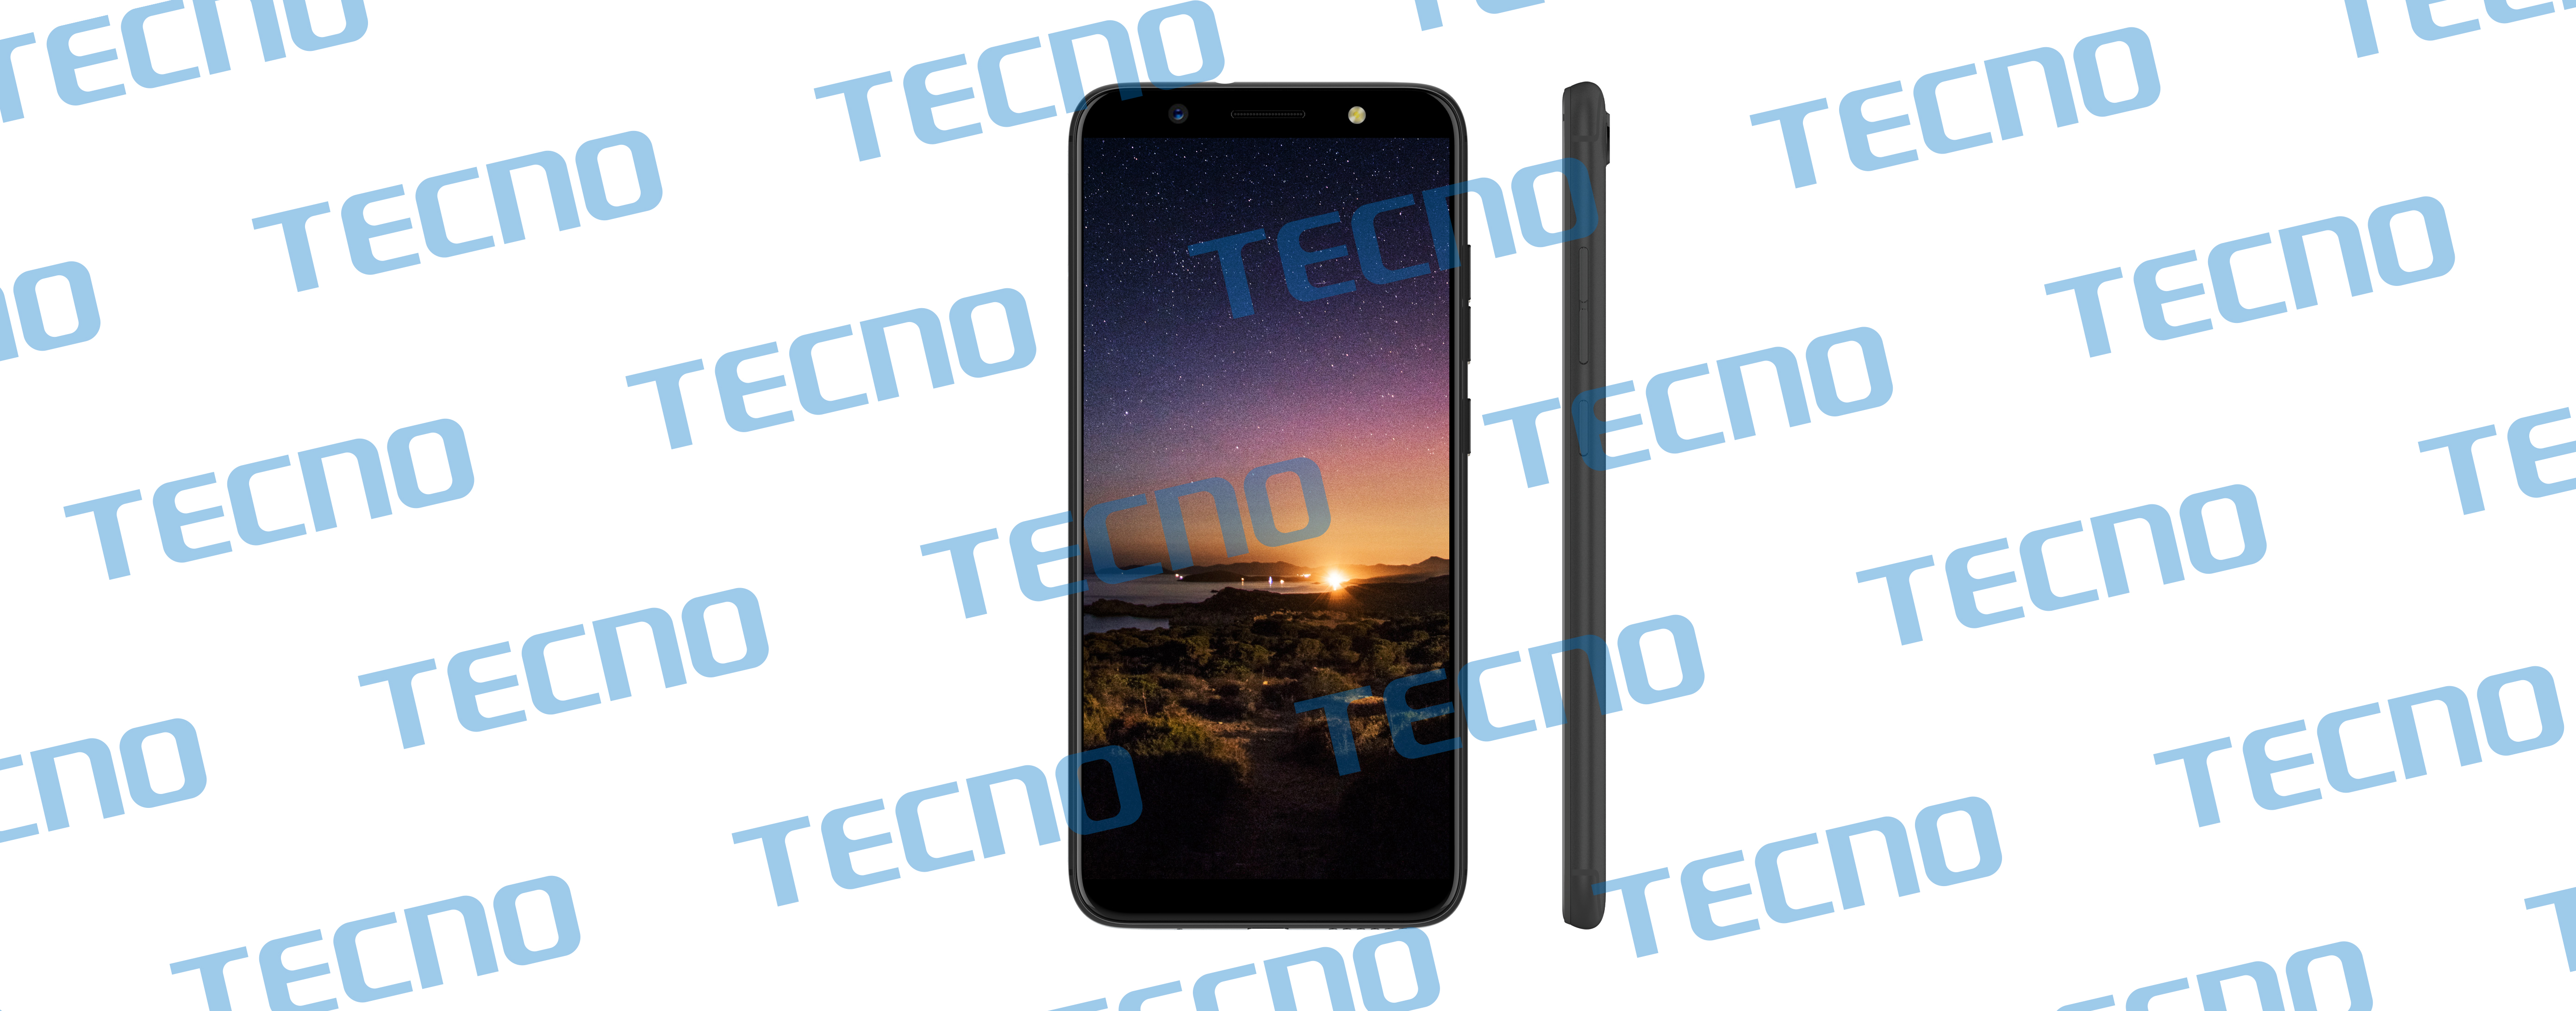 Leaked images suggests TECNO Mobile is set to launch its first full